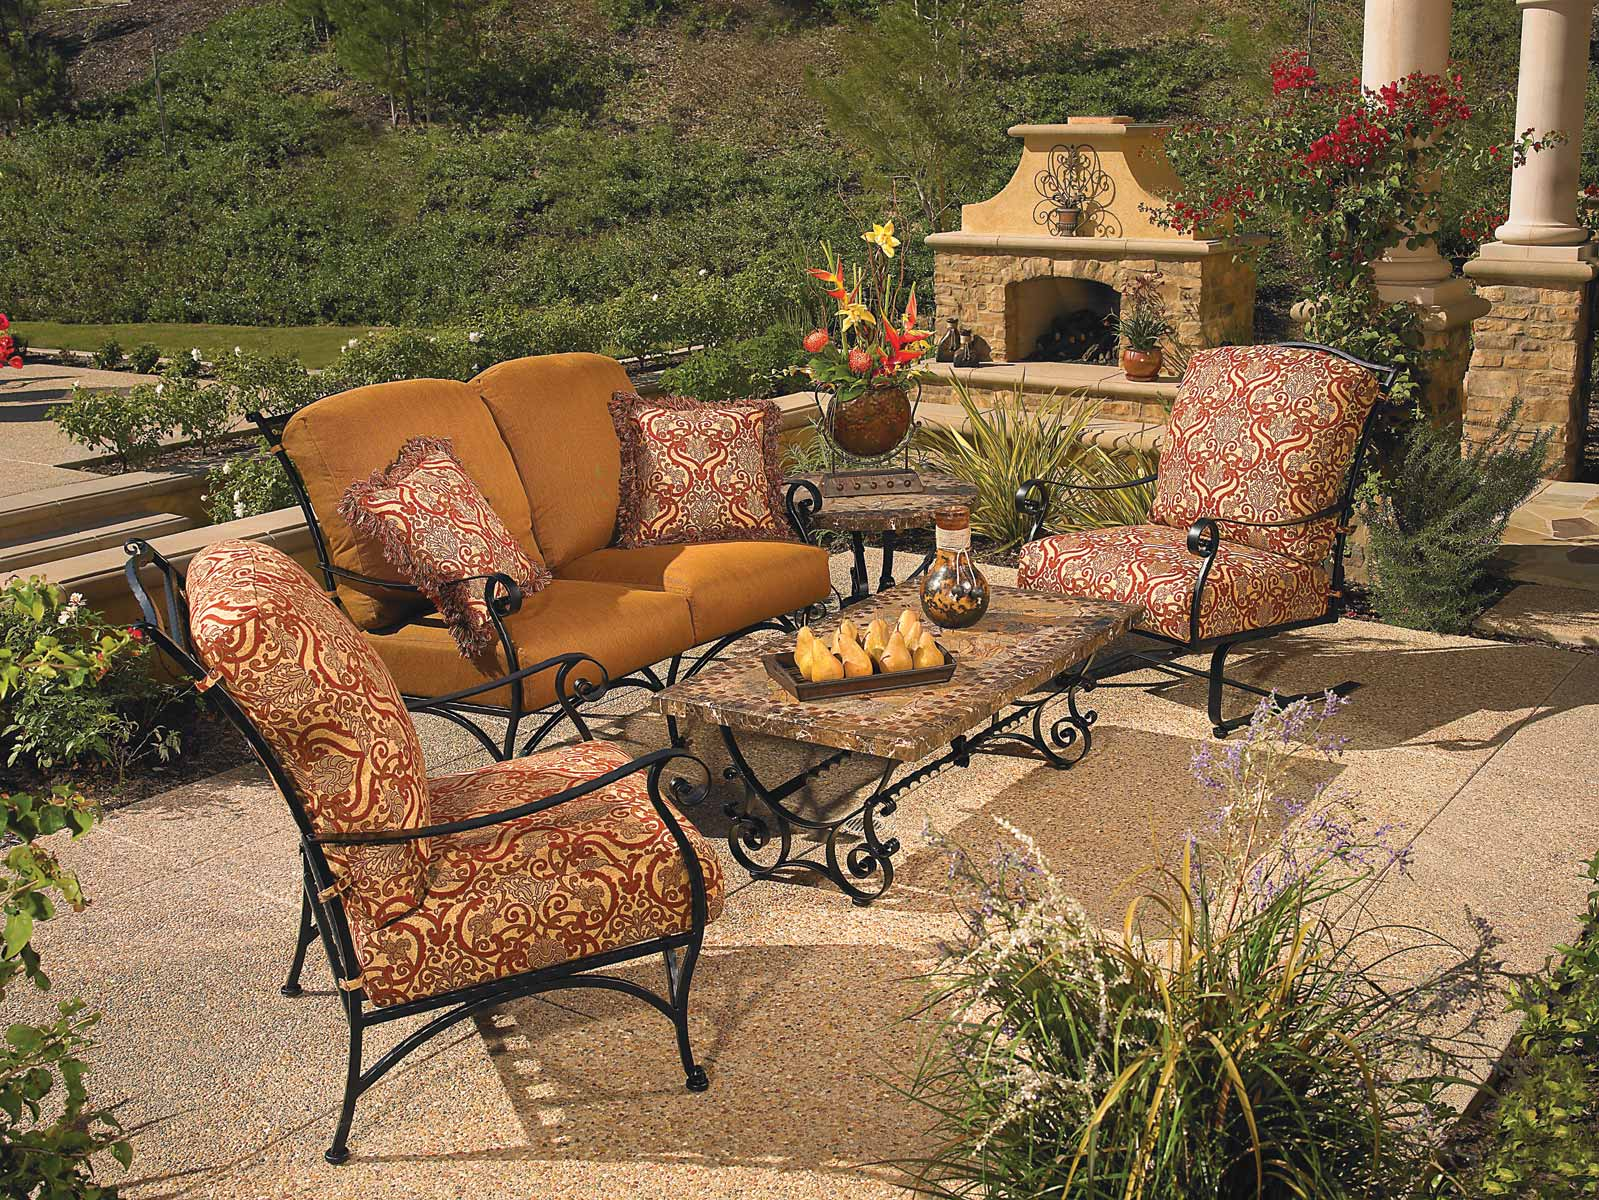 luxury outdoor furniture set fireplace linly designs rh linlydesigns com luxury outdoor furniture scottsdale luxury outdoor furniture san rafael ca